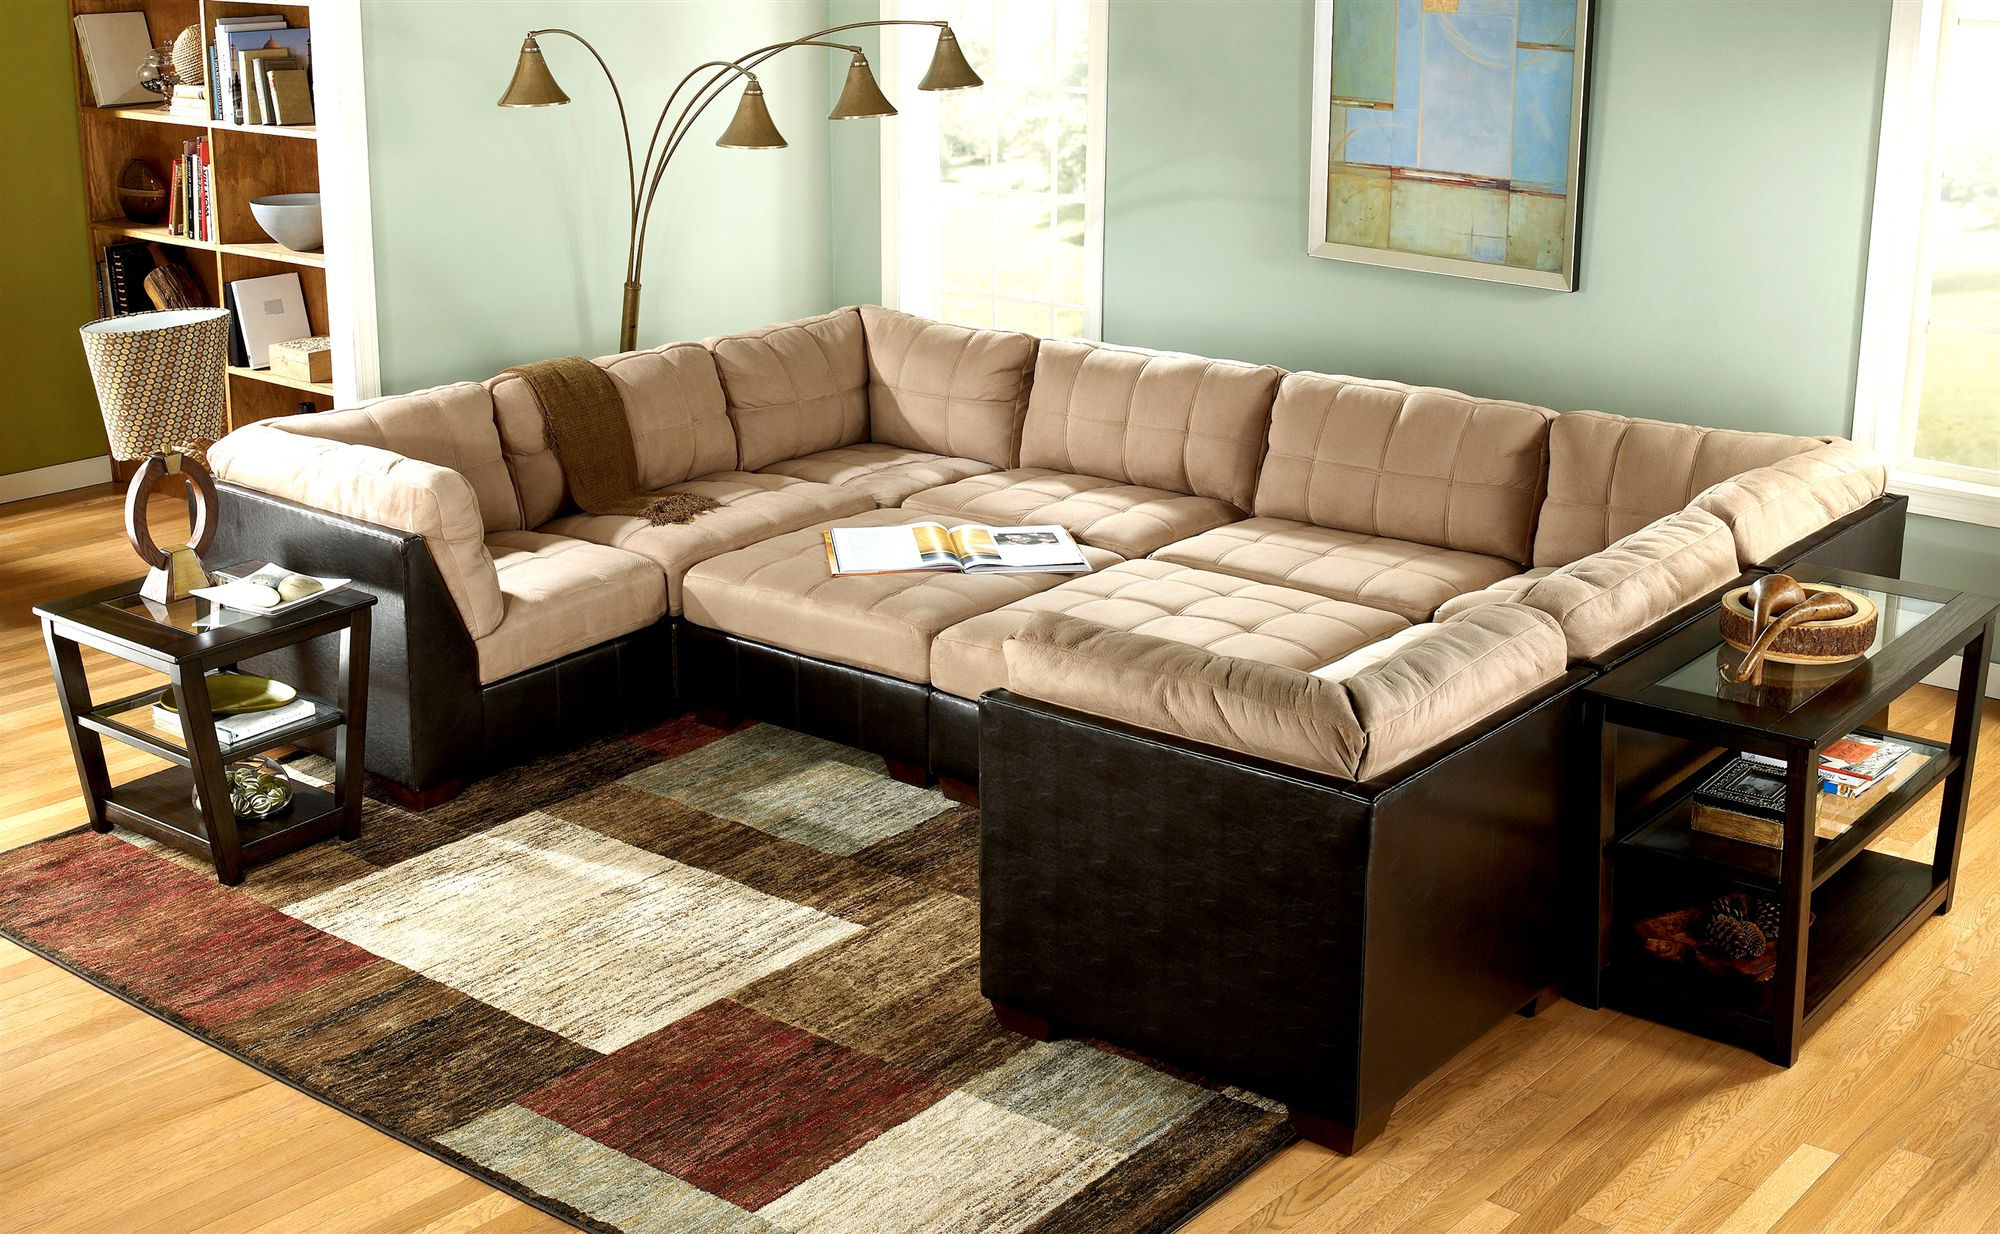 Living Room Sofa Set : Living Room Ideas with Sectionals Sofa for Small Living ...